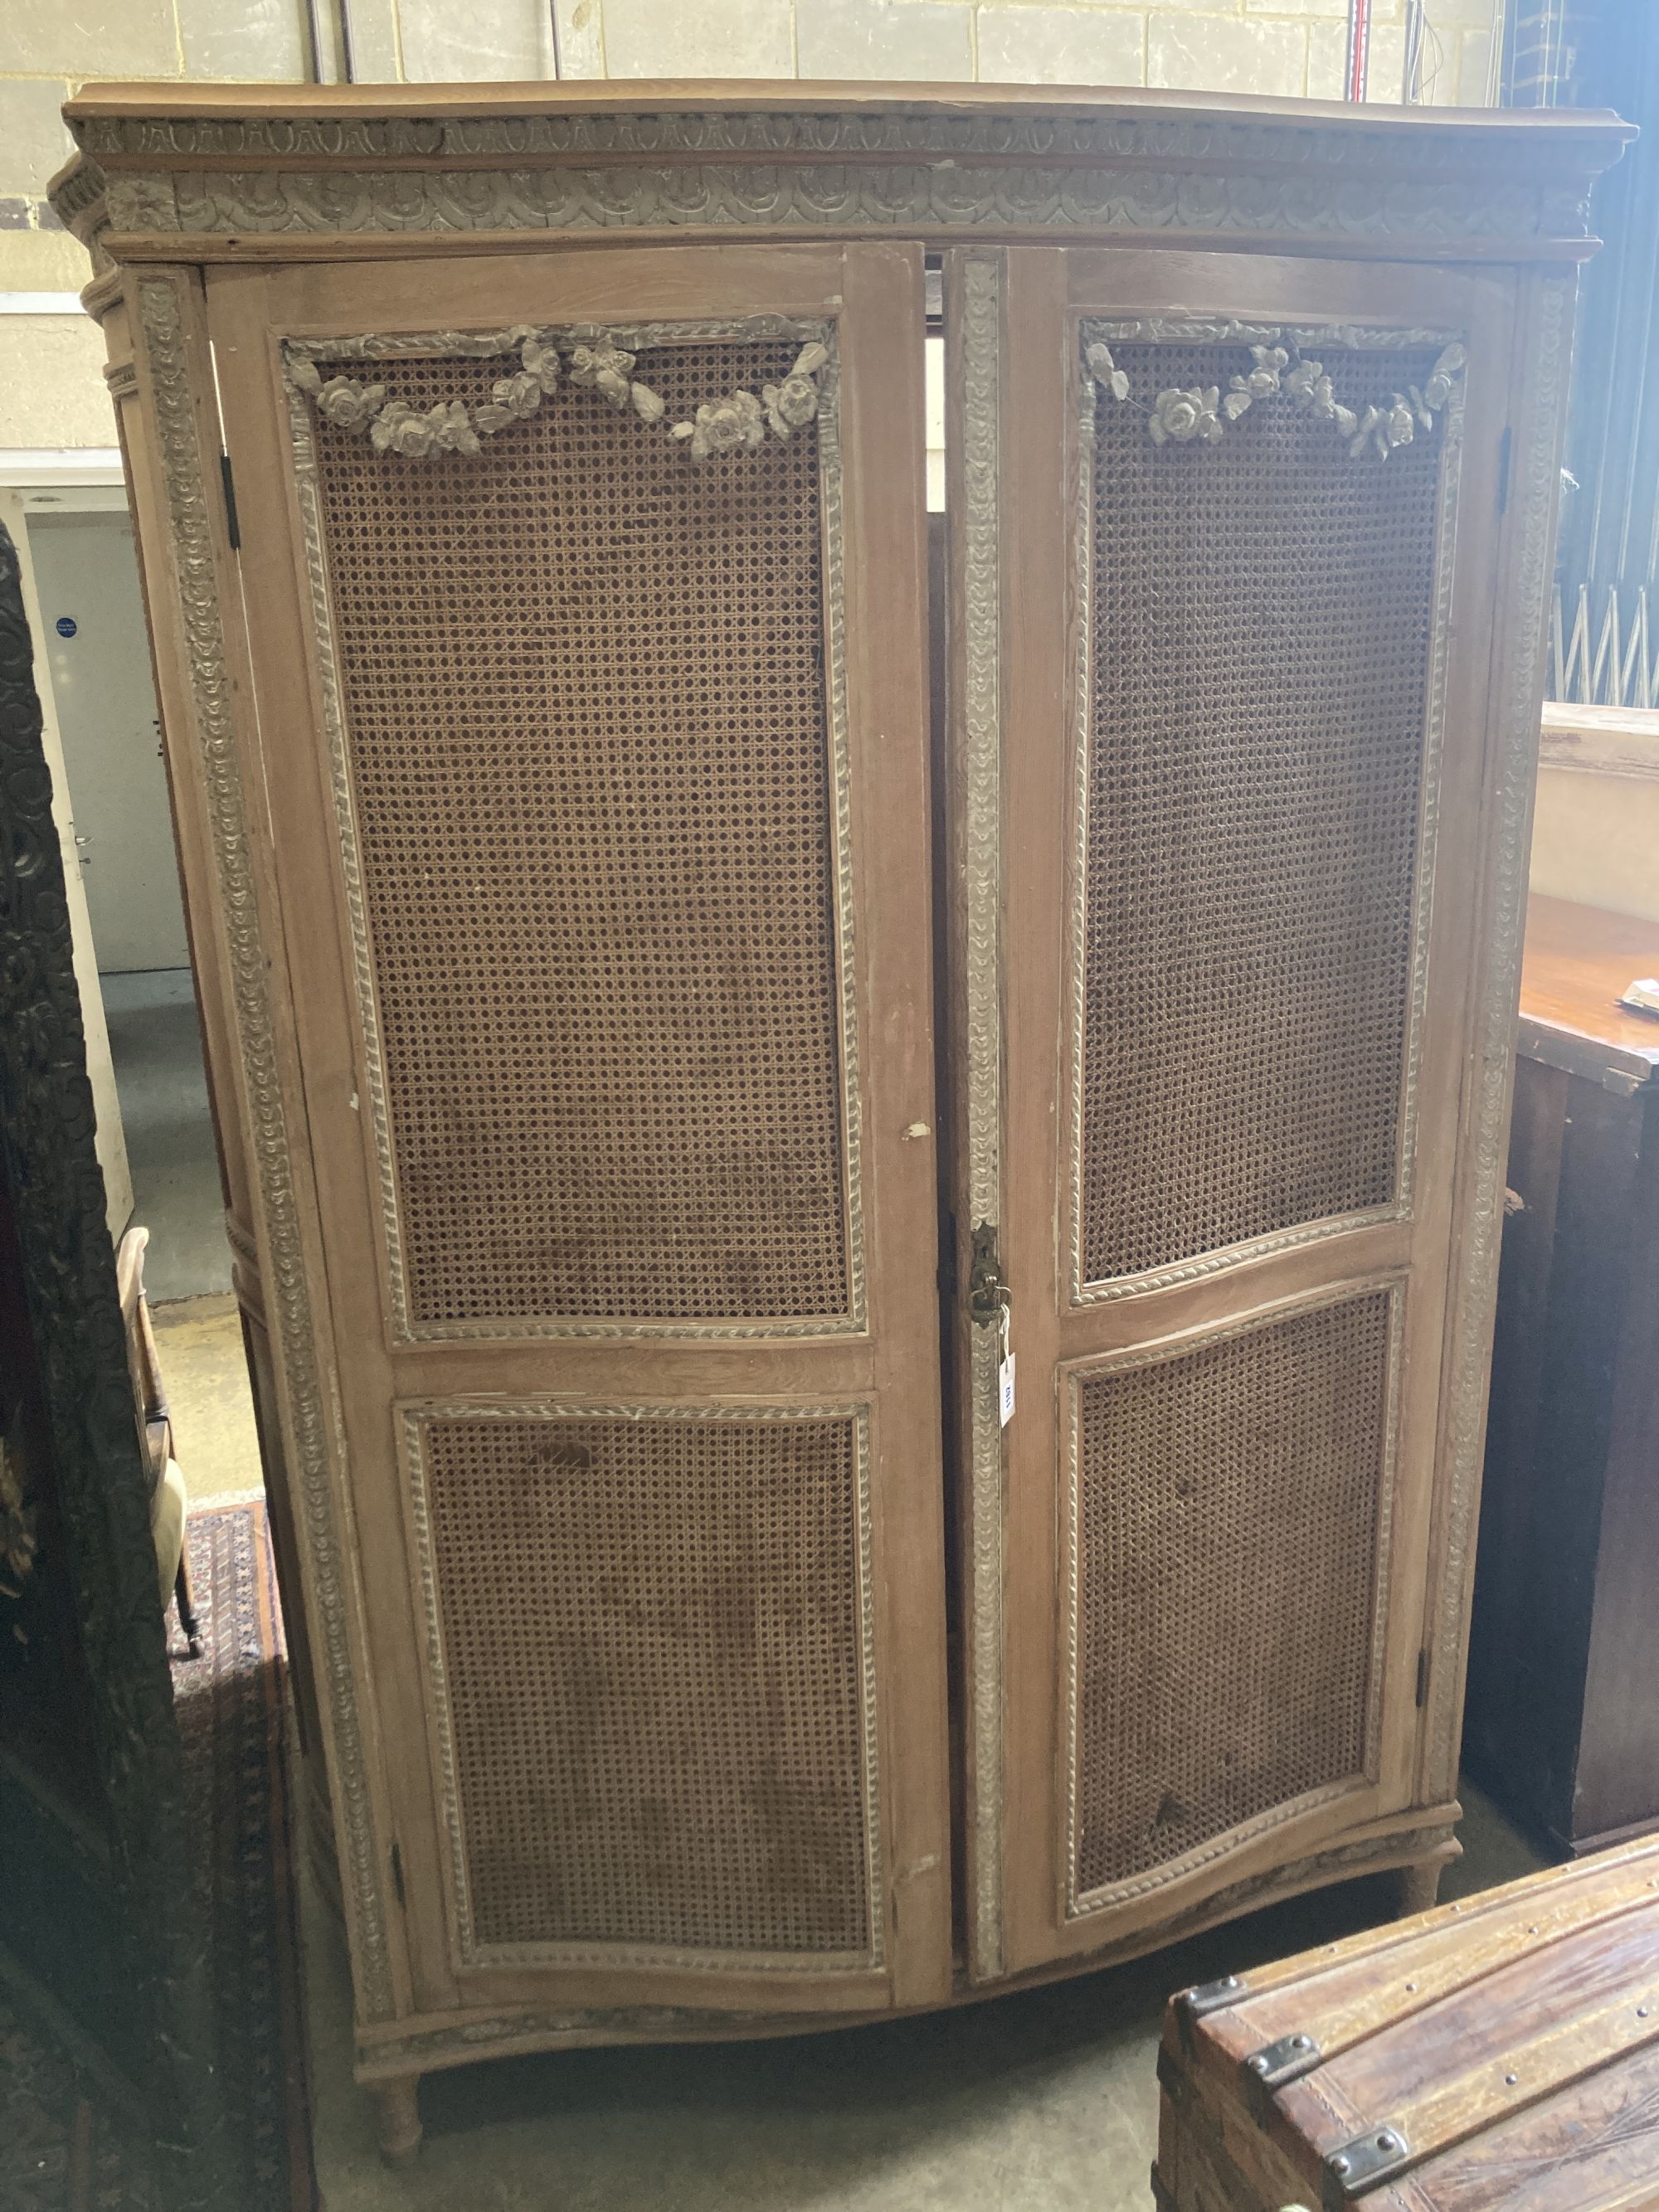 A French serpentine front caned pine armoire, width 154cm depth 60cm height 216cm